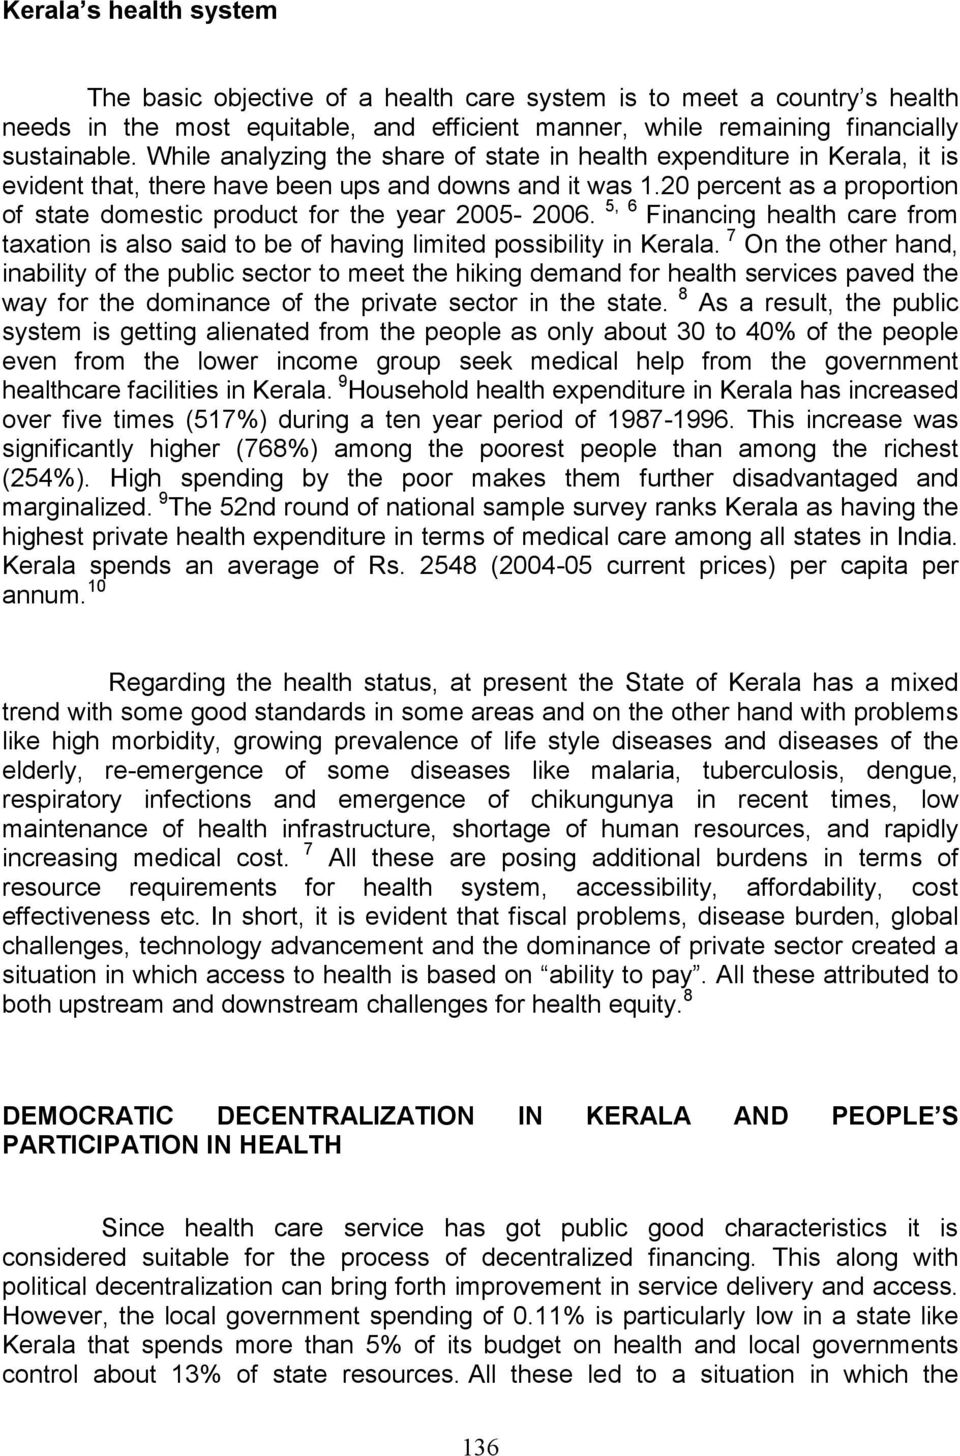 20 percent as a proportion of state domestic product for the year 2005-2006. 5, 6 Financing health care from taxation is also said to be of having limited possibility in Kerala.